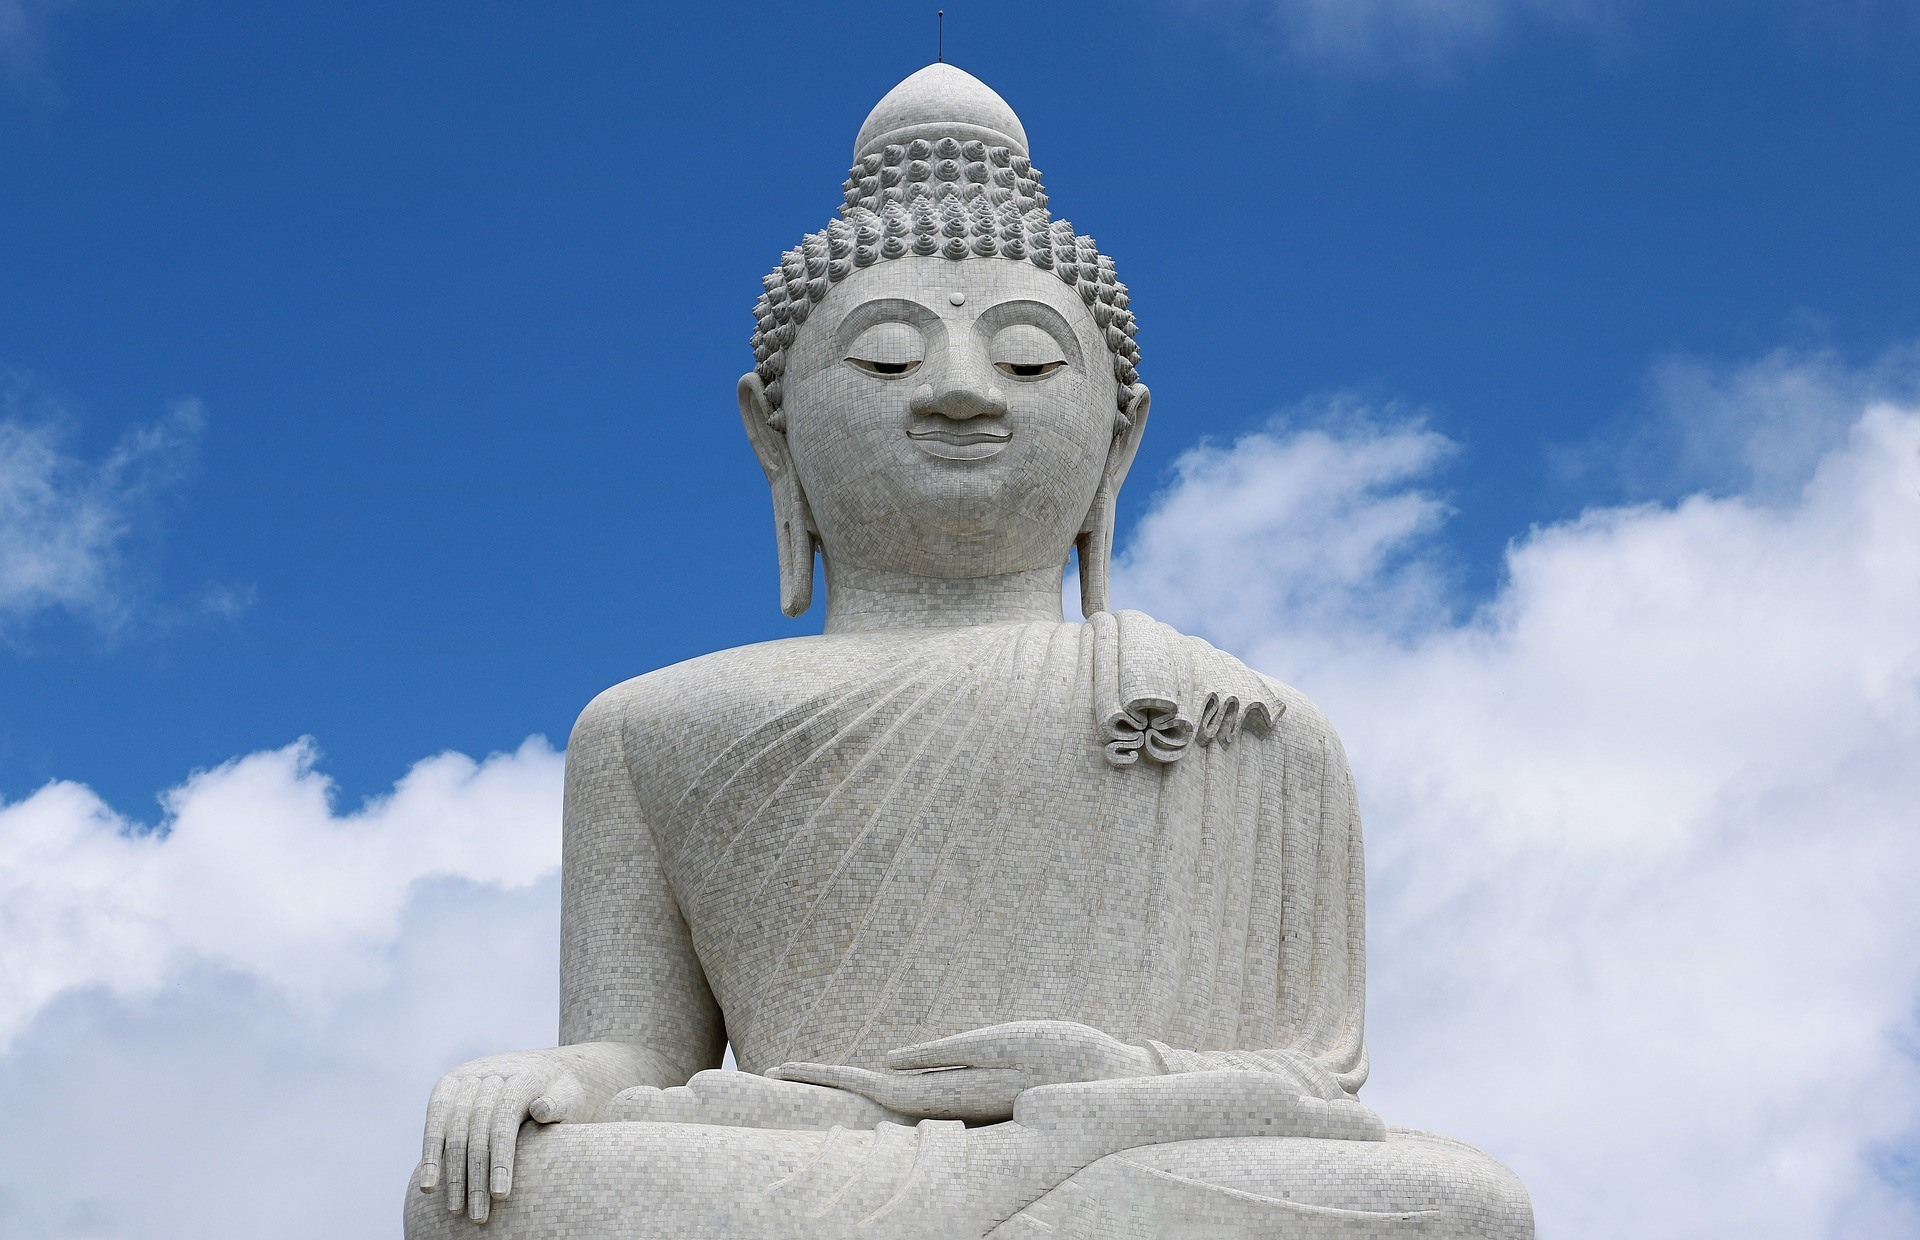 A Buddha statue looking serene in Phuket